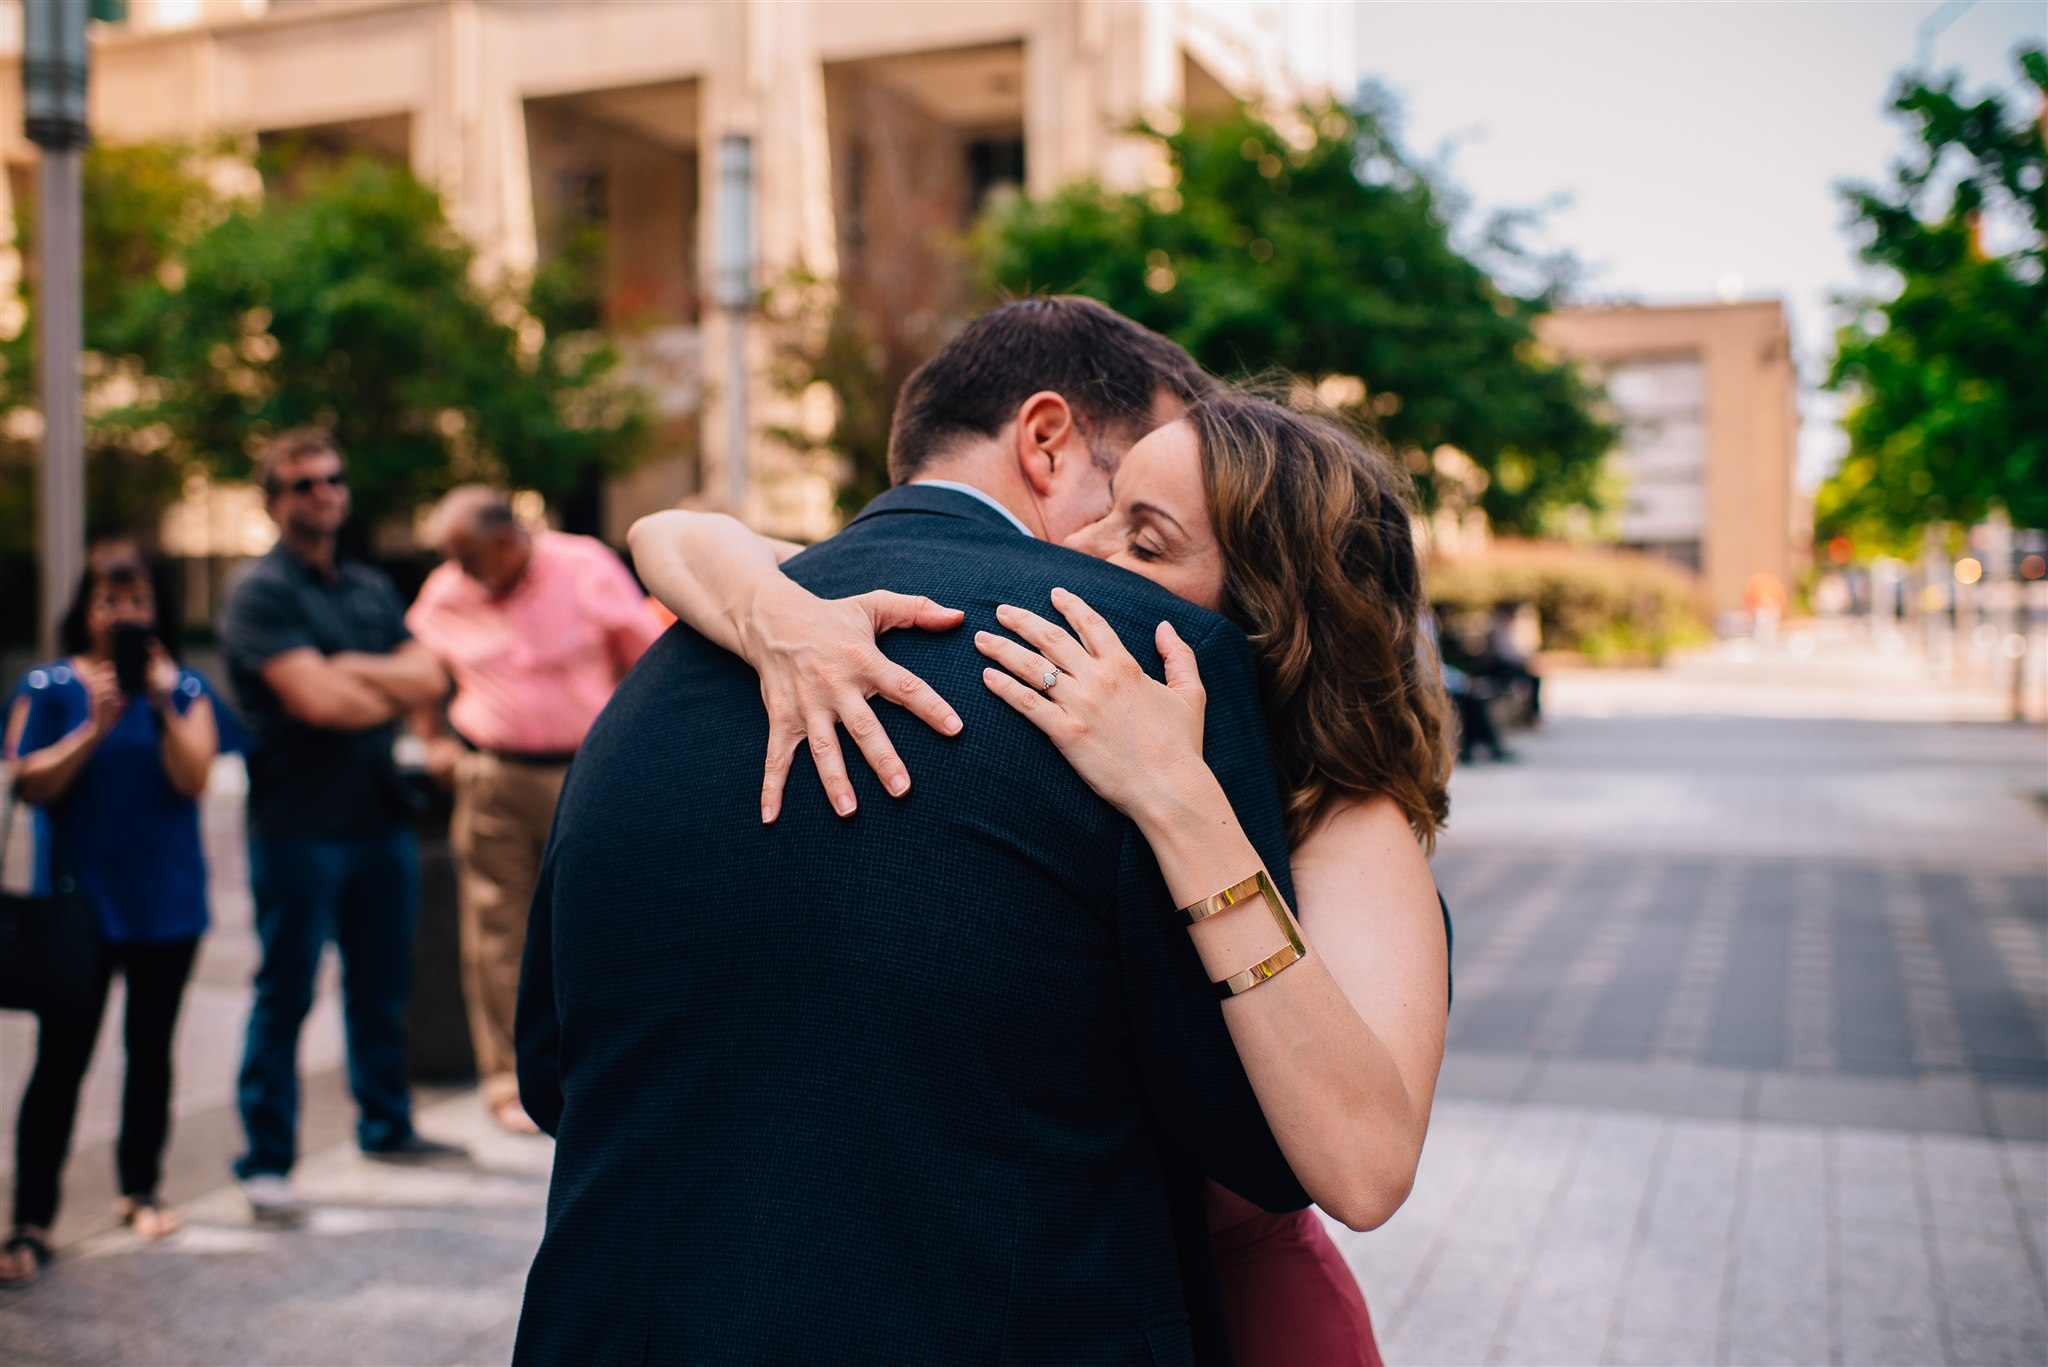 L___RDSC_1850.jpgnorth carolina courthouse wedding - north carolina elopement photographer - raleigh courthouse wedding - raleigh elopement - durham courthouse wedding